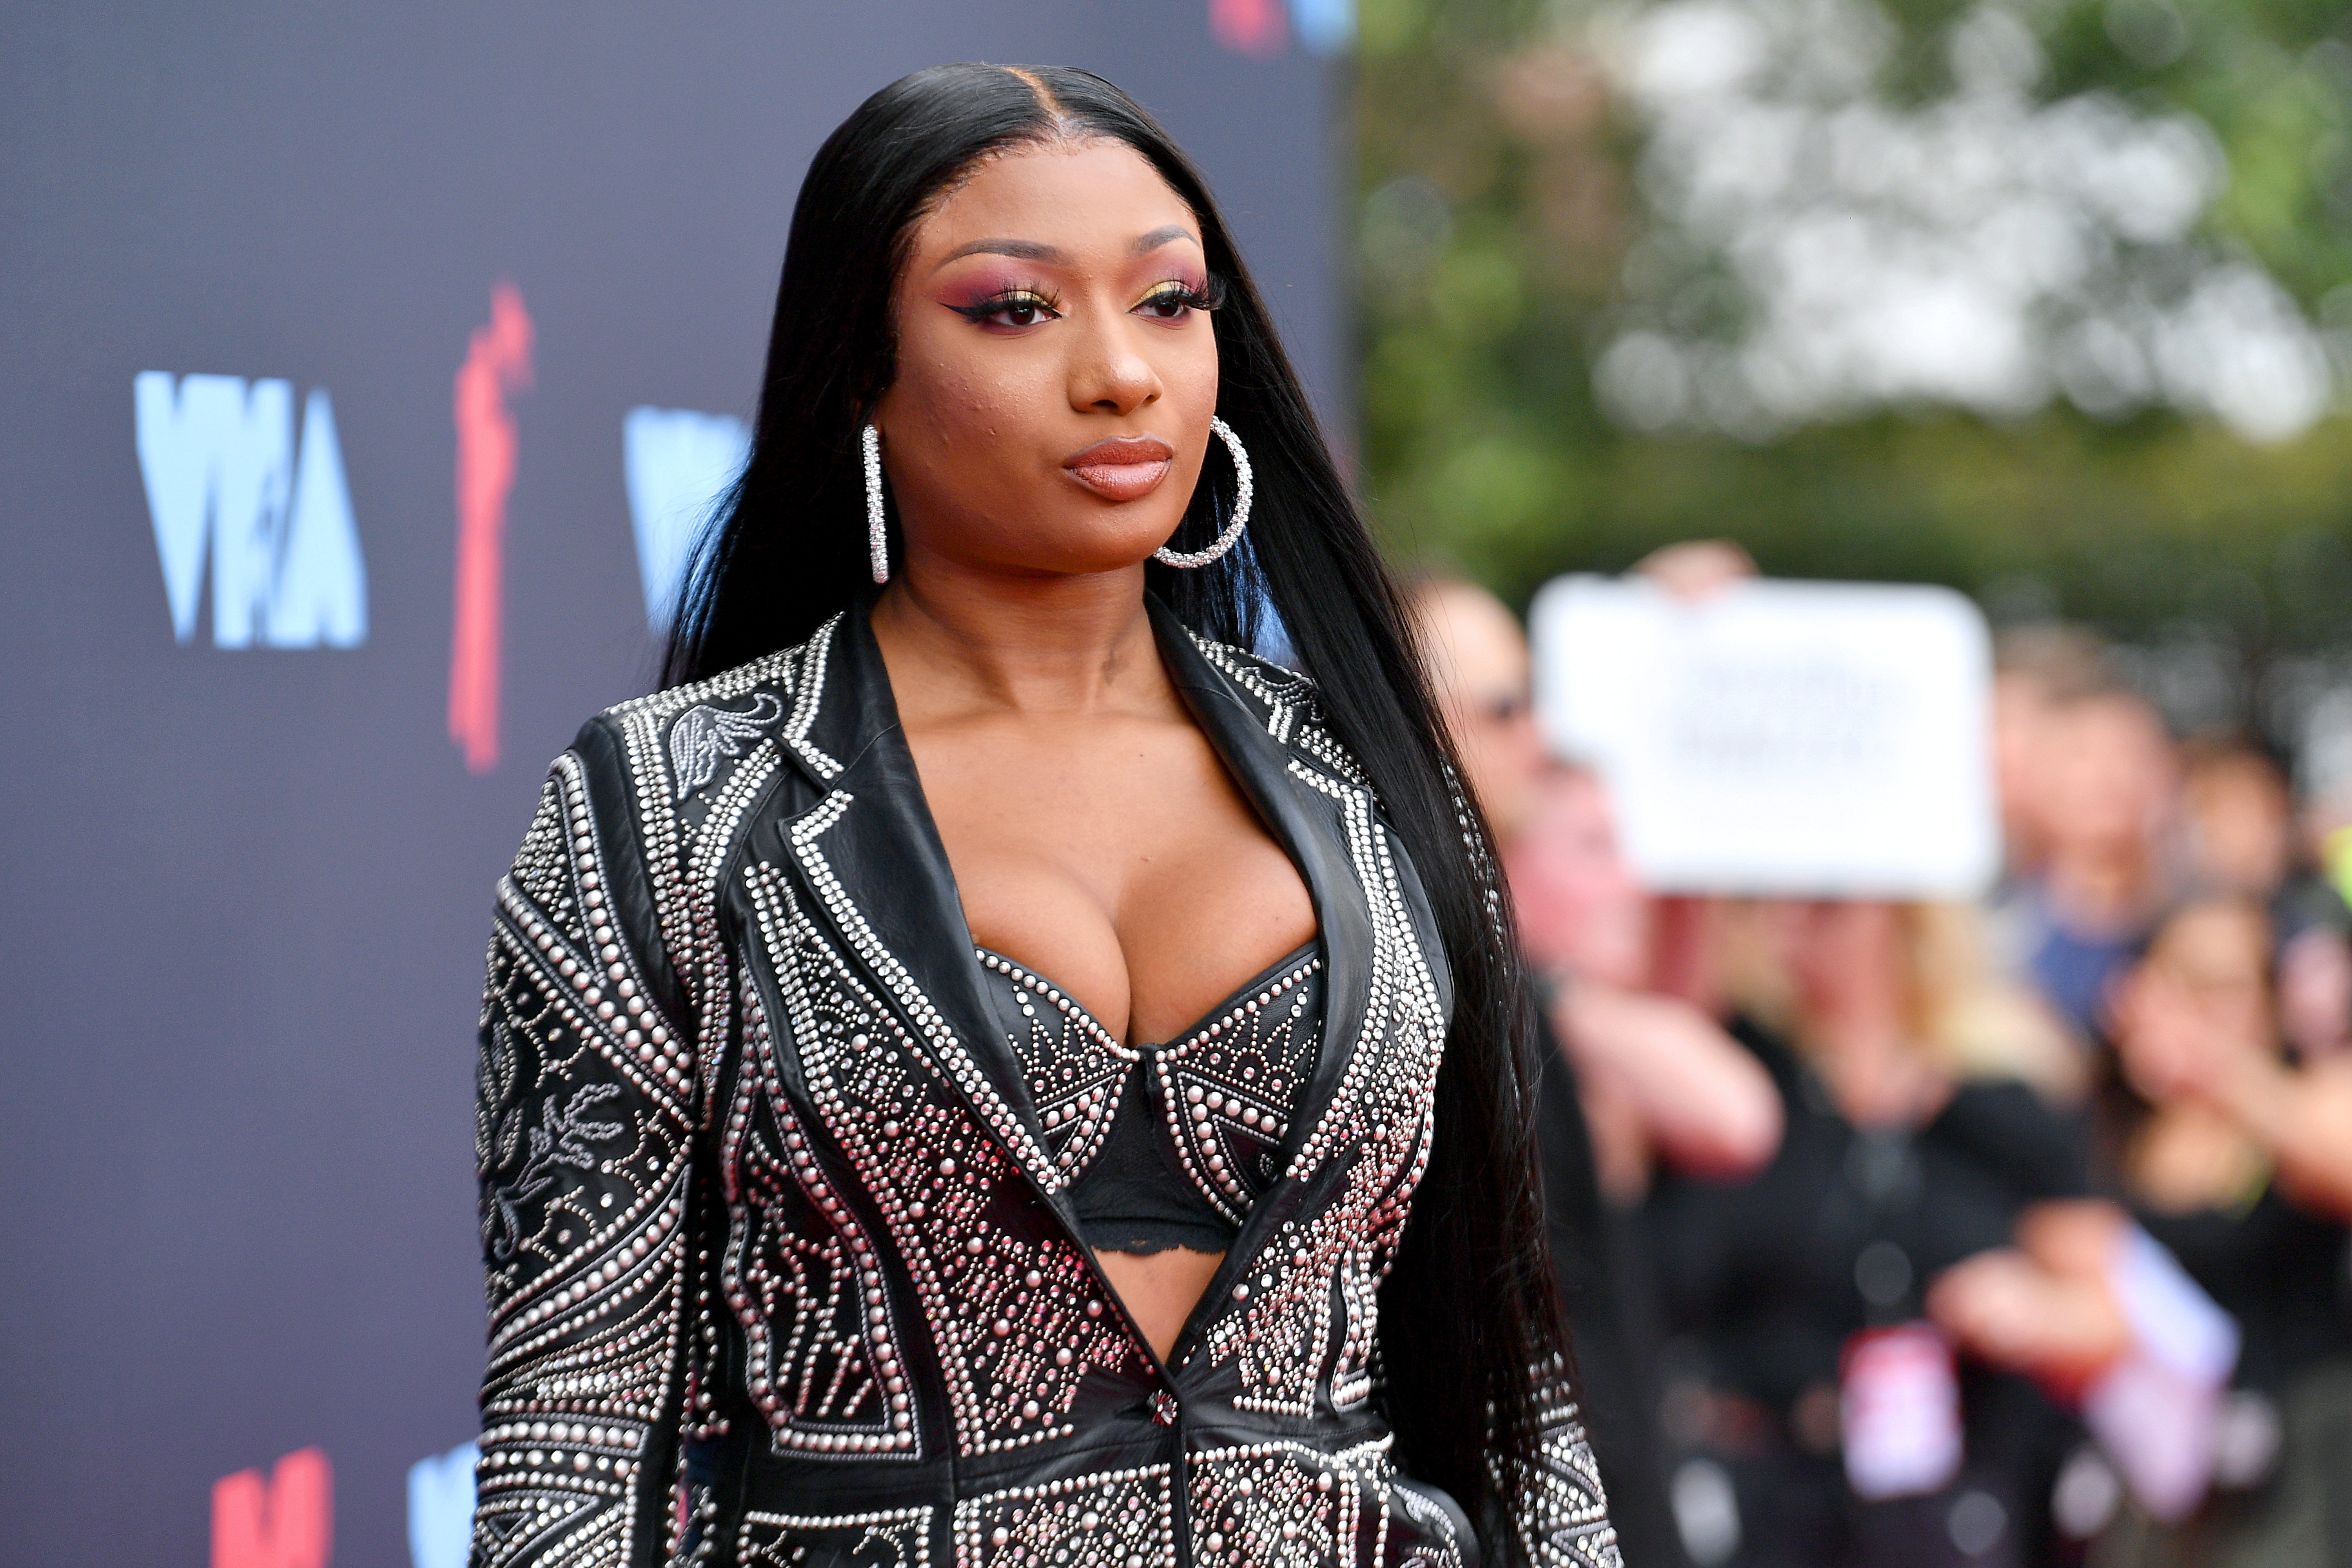 Megan Thee Stallion at the 2019 MTV Video Music Awards on August 26, 2019 in Newark, New Jersey.   Source: Getty Images